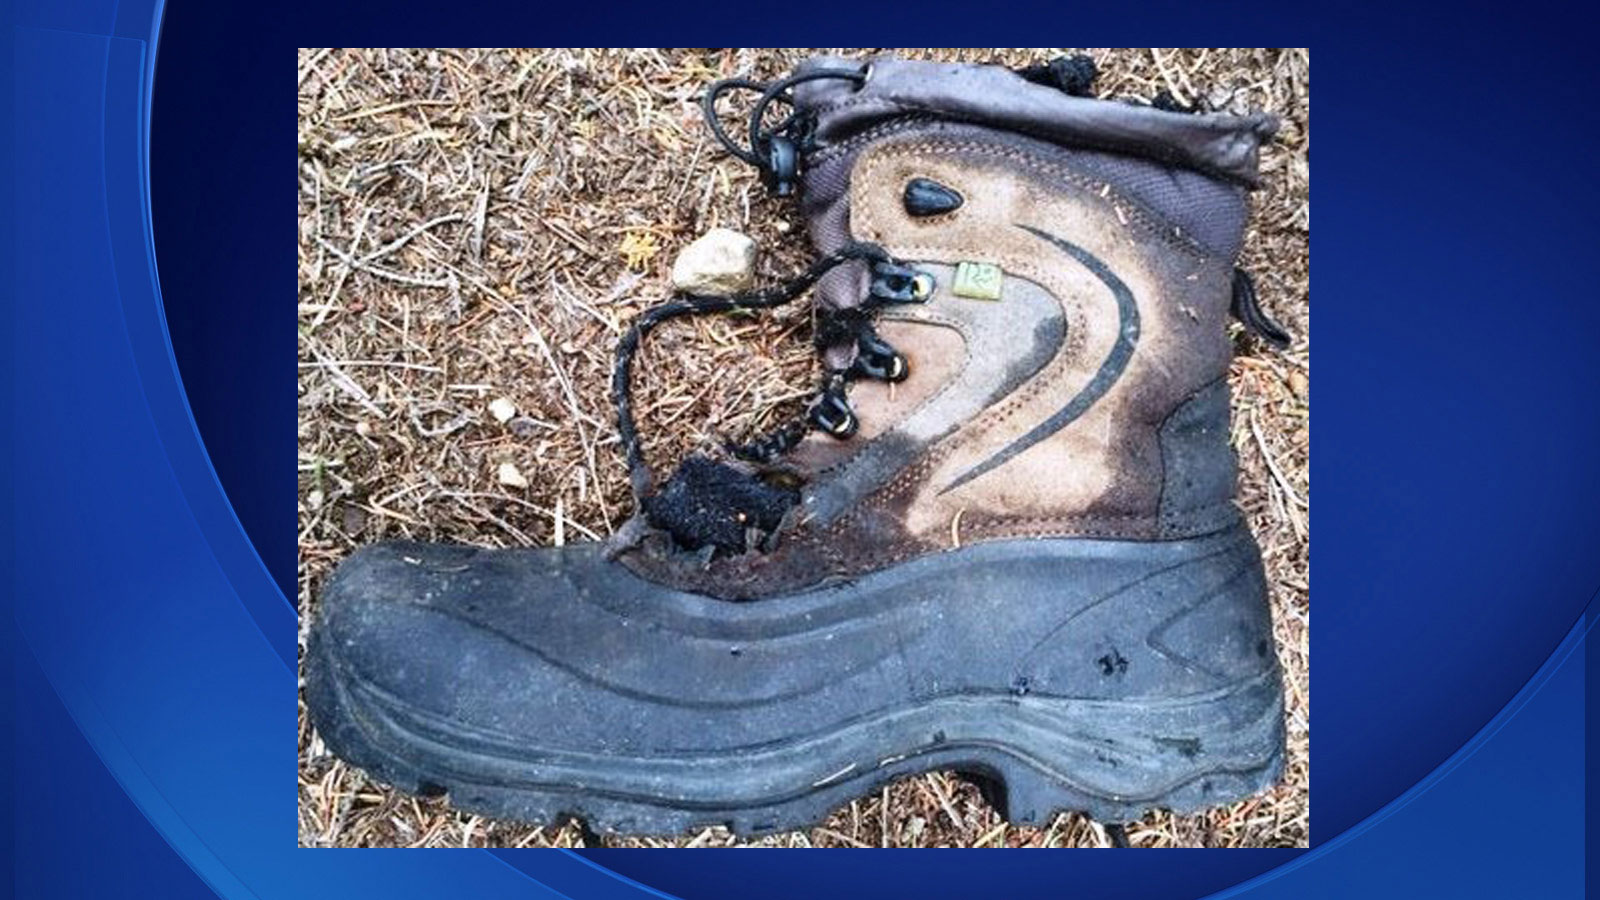 The boot where the human remains were found (credit: Boulder County Sheriff's Office)